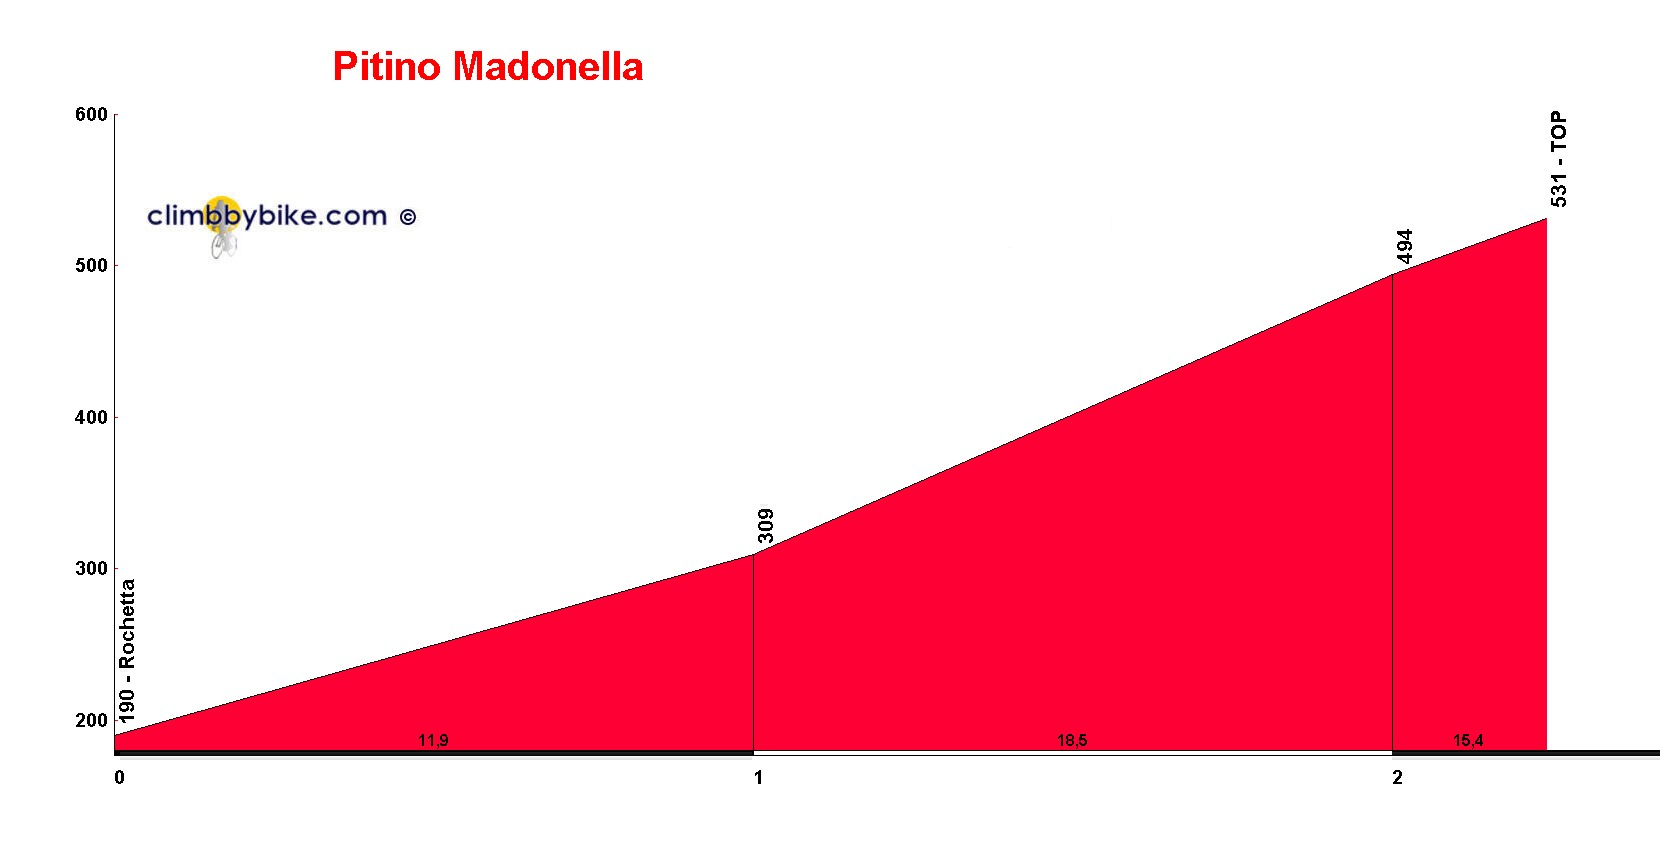 Elevation profile for Pitino Madonella